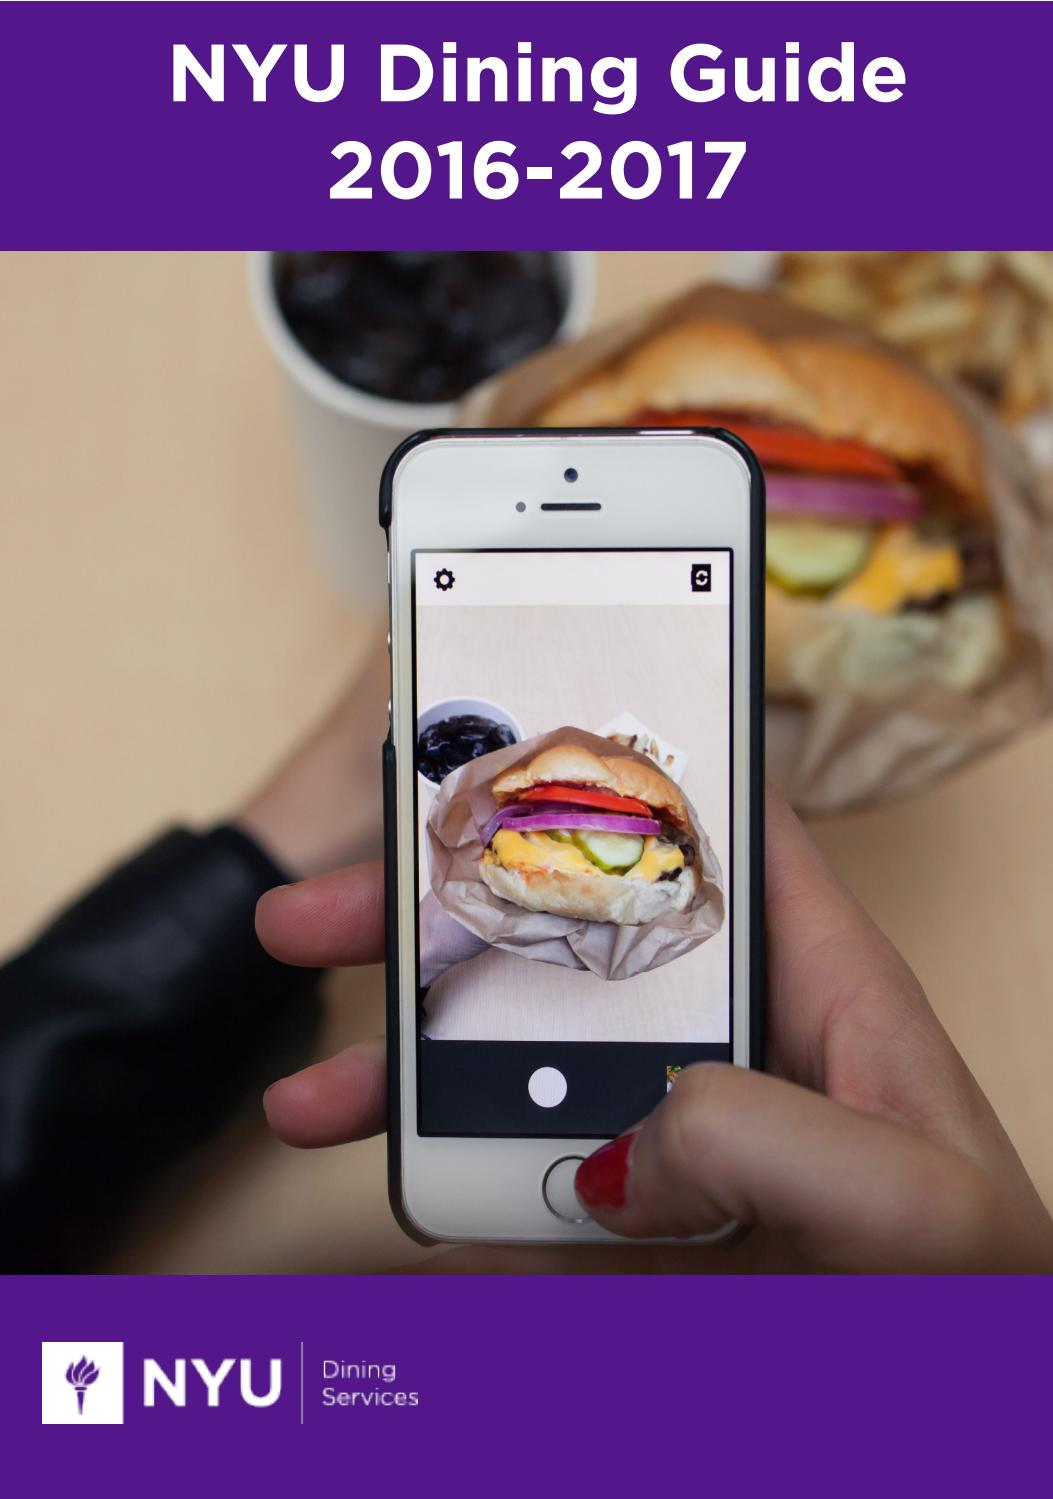 NYU Dining Guide 2016-2017 by NYU Campus Services - issuu